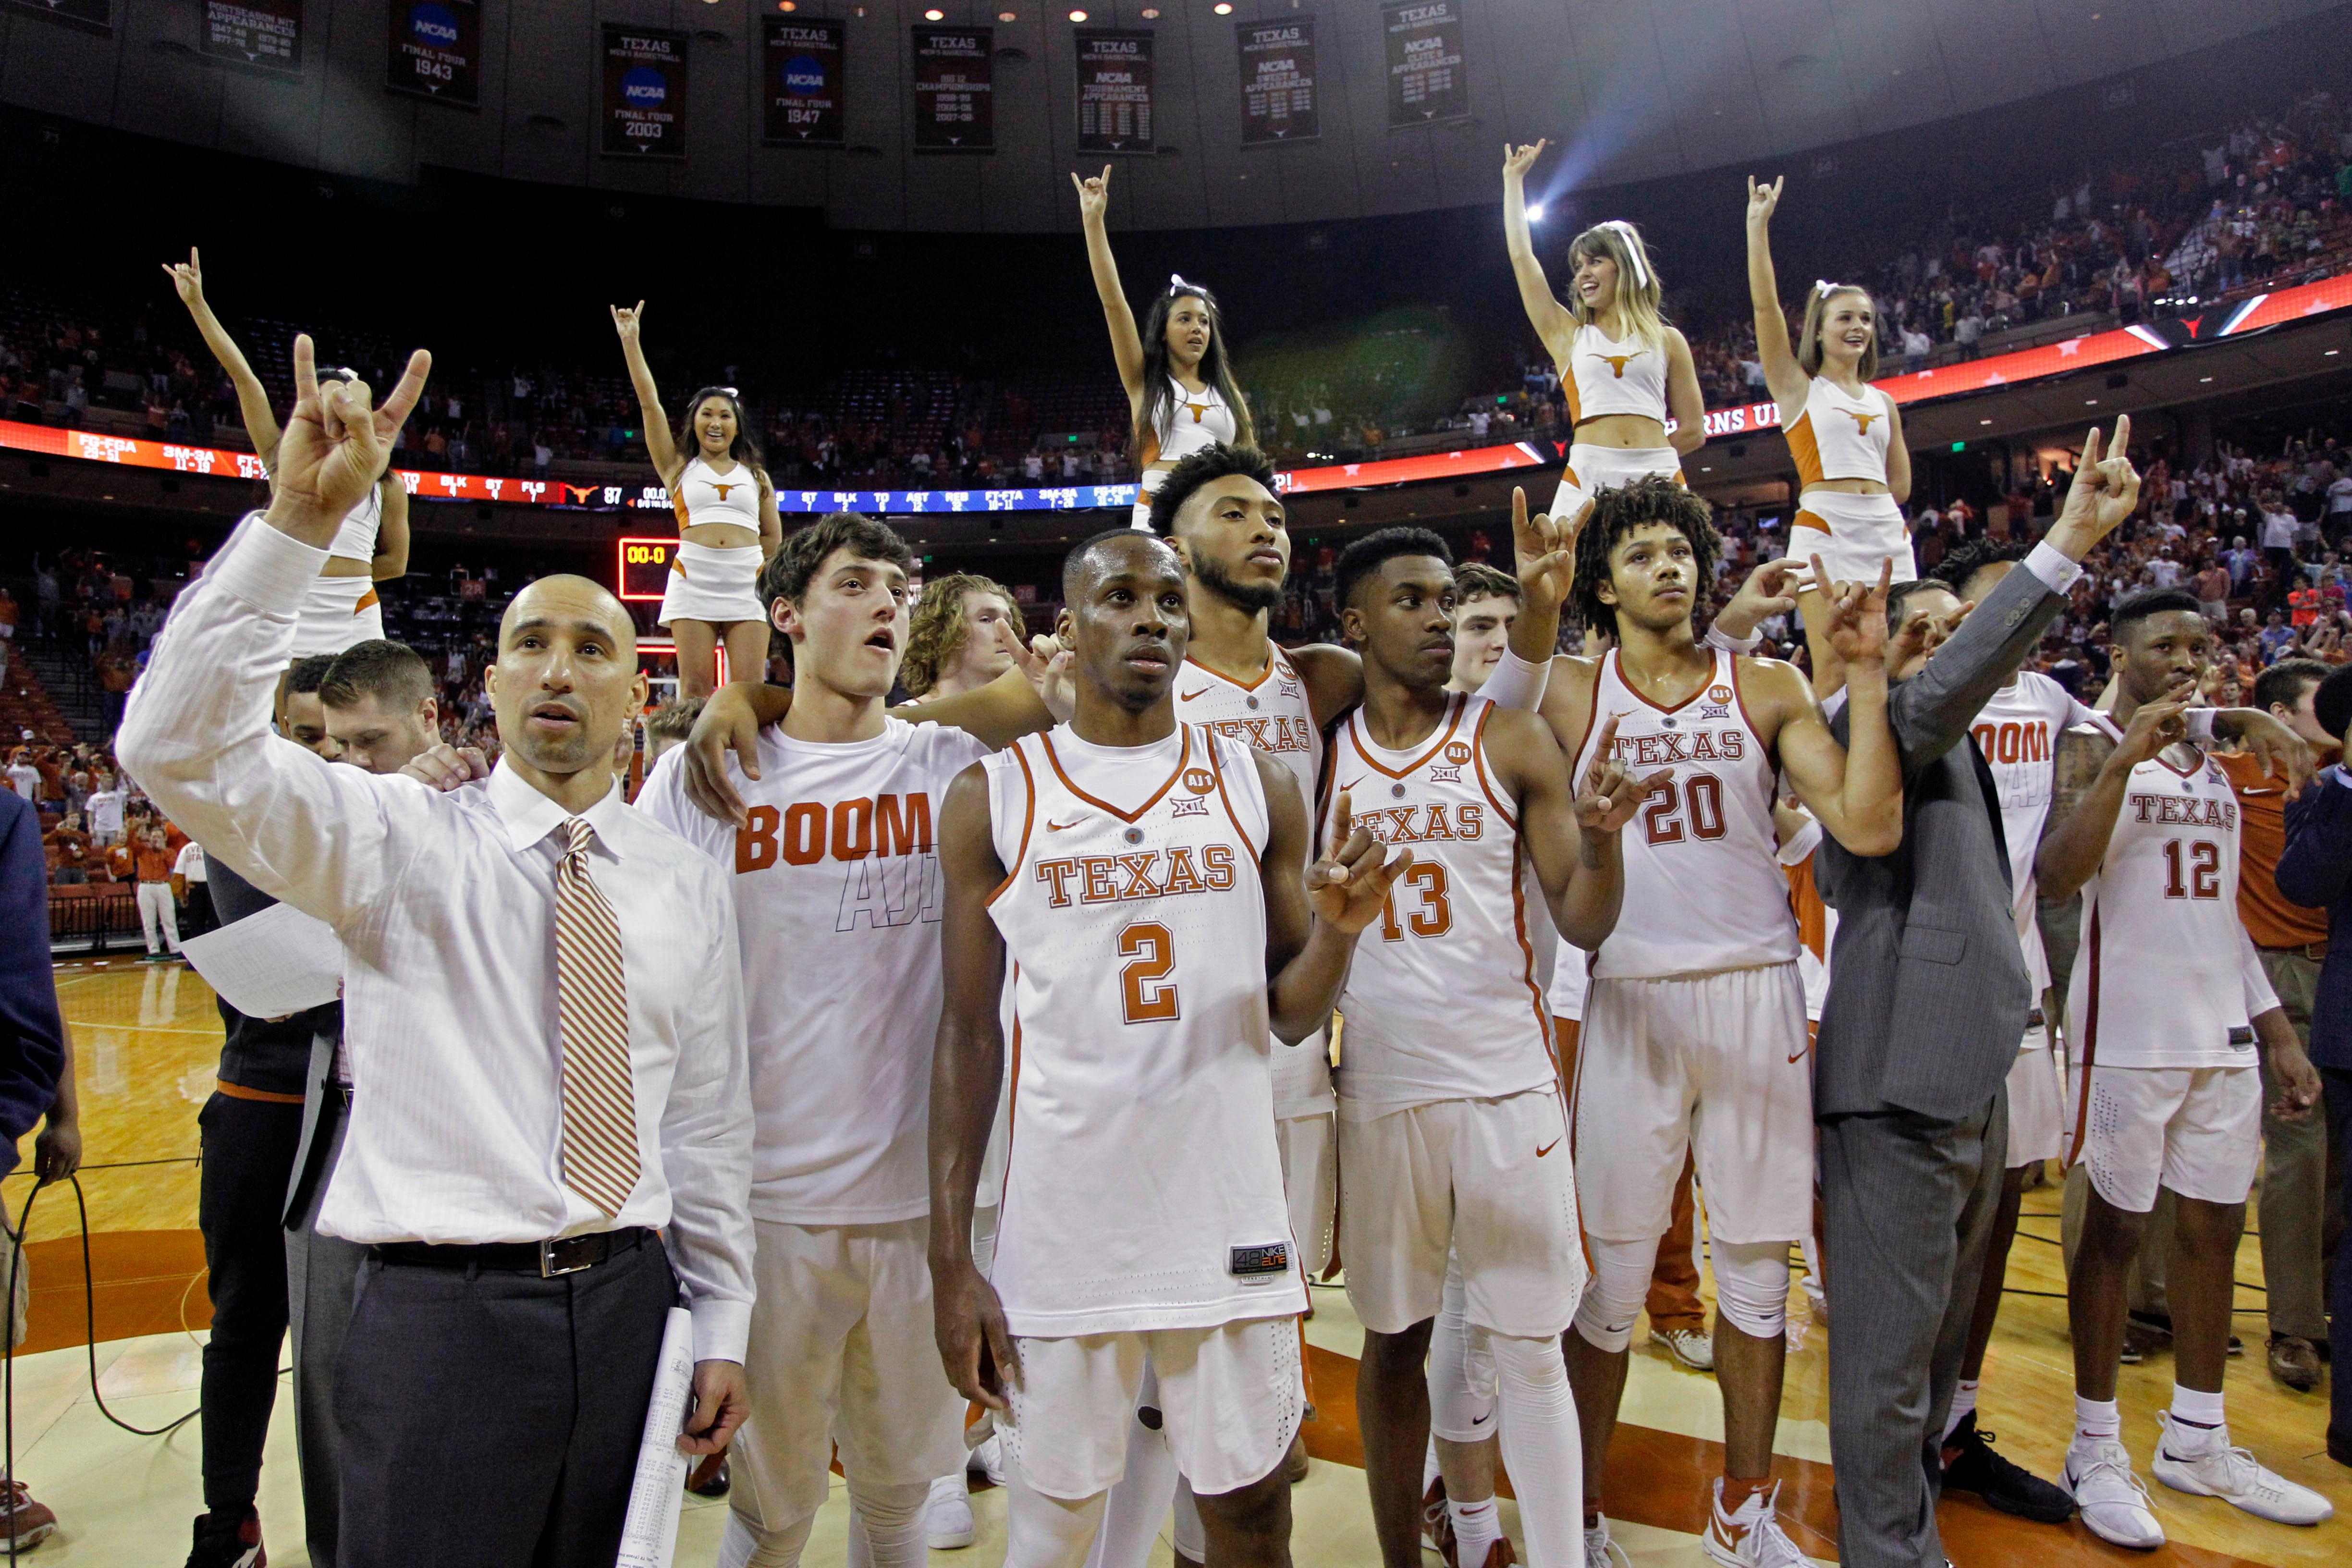 "FILE - In this March 3, 2018, file photo, Texas head coach Shaka Smart, left, sings the ""Eyes of Texas"" with his team after defeating West Virginia 87-79 in an NCAA college basketball game, in Austin, Texas. Through each game since early January, win or lose, the Texas Longhorns have insisted teammate Andrew Jone has been with them every step of the way as they their fought to return to the NCAA Tournament. So much so, that when it came time to see if their name would be called, the Longhorns dialed up Jones, who is in Houston for leukemia treatments, on a video conference call to listen and watch together.(AP Photo/Michael Thomas, File)"